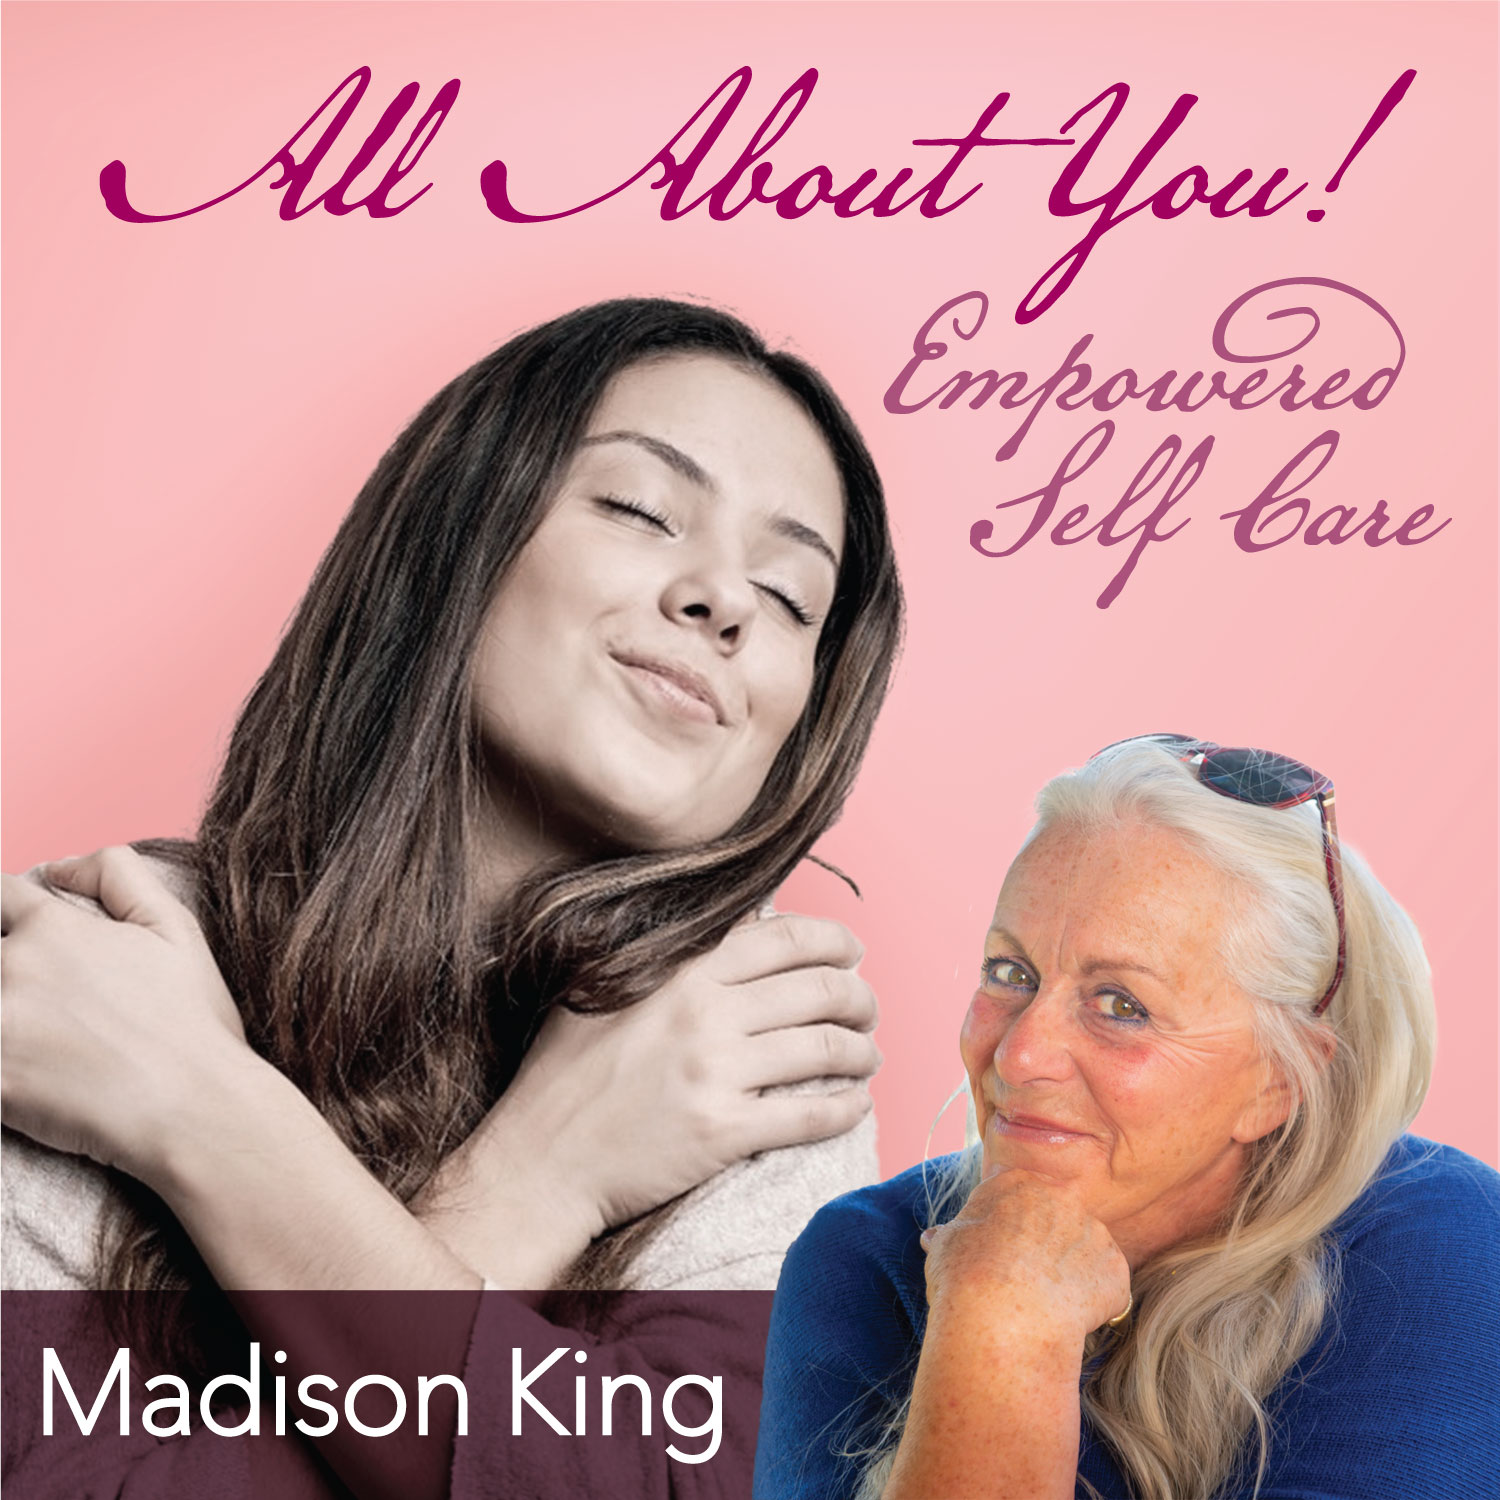 All About You — Empowered Self Care with Madison King